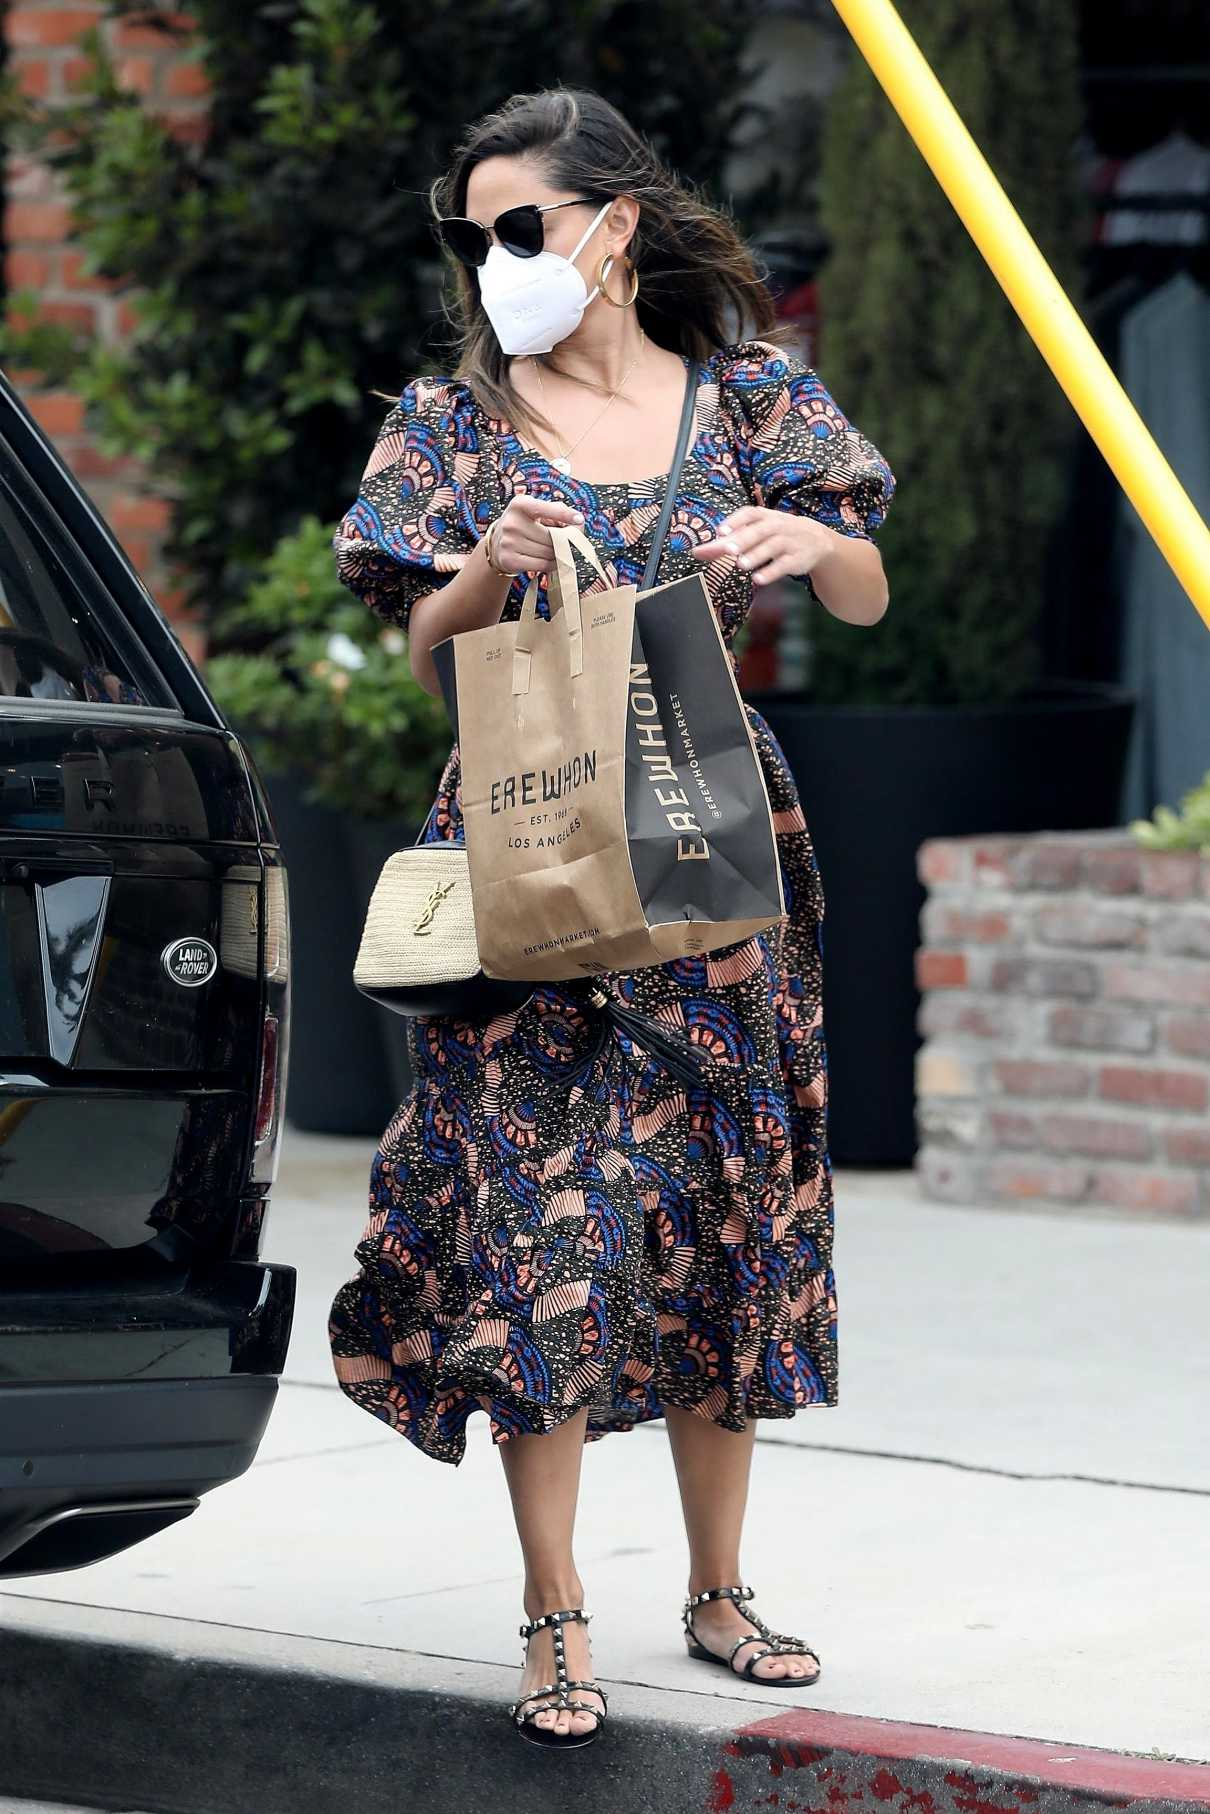 Vanessa Lachey in a Protective Mask